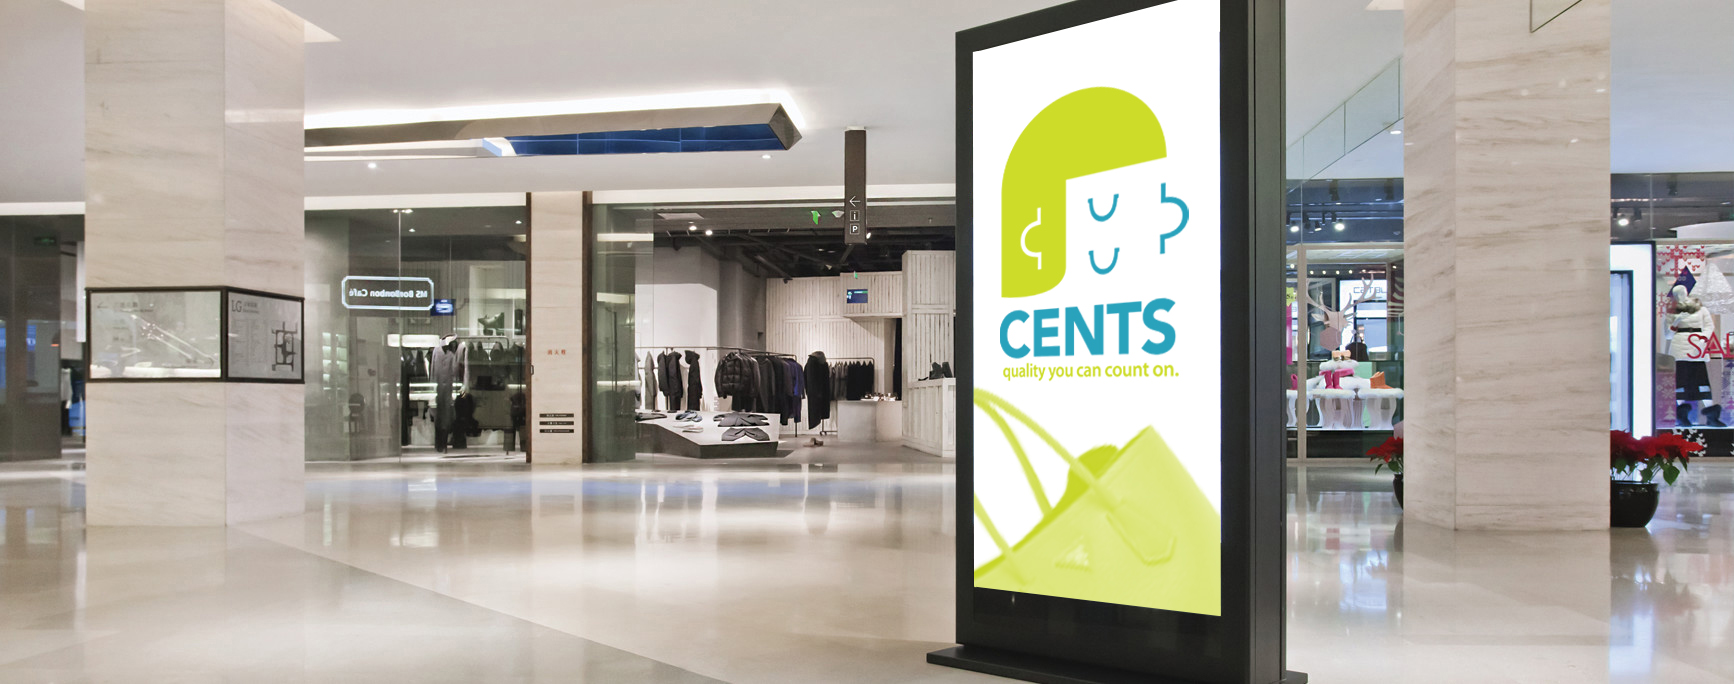 Cents_Mall_Advertisment.jpg